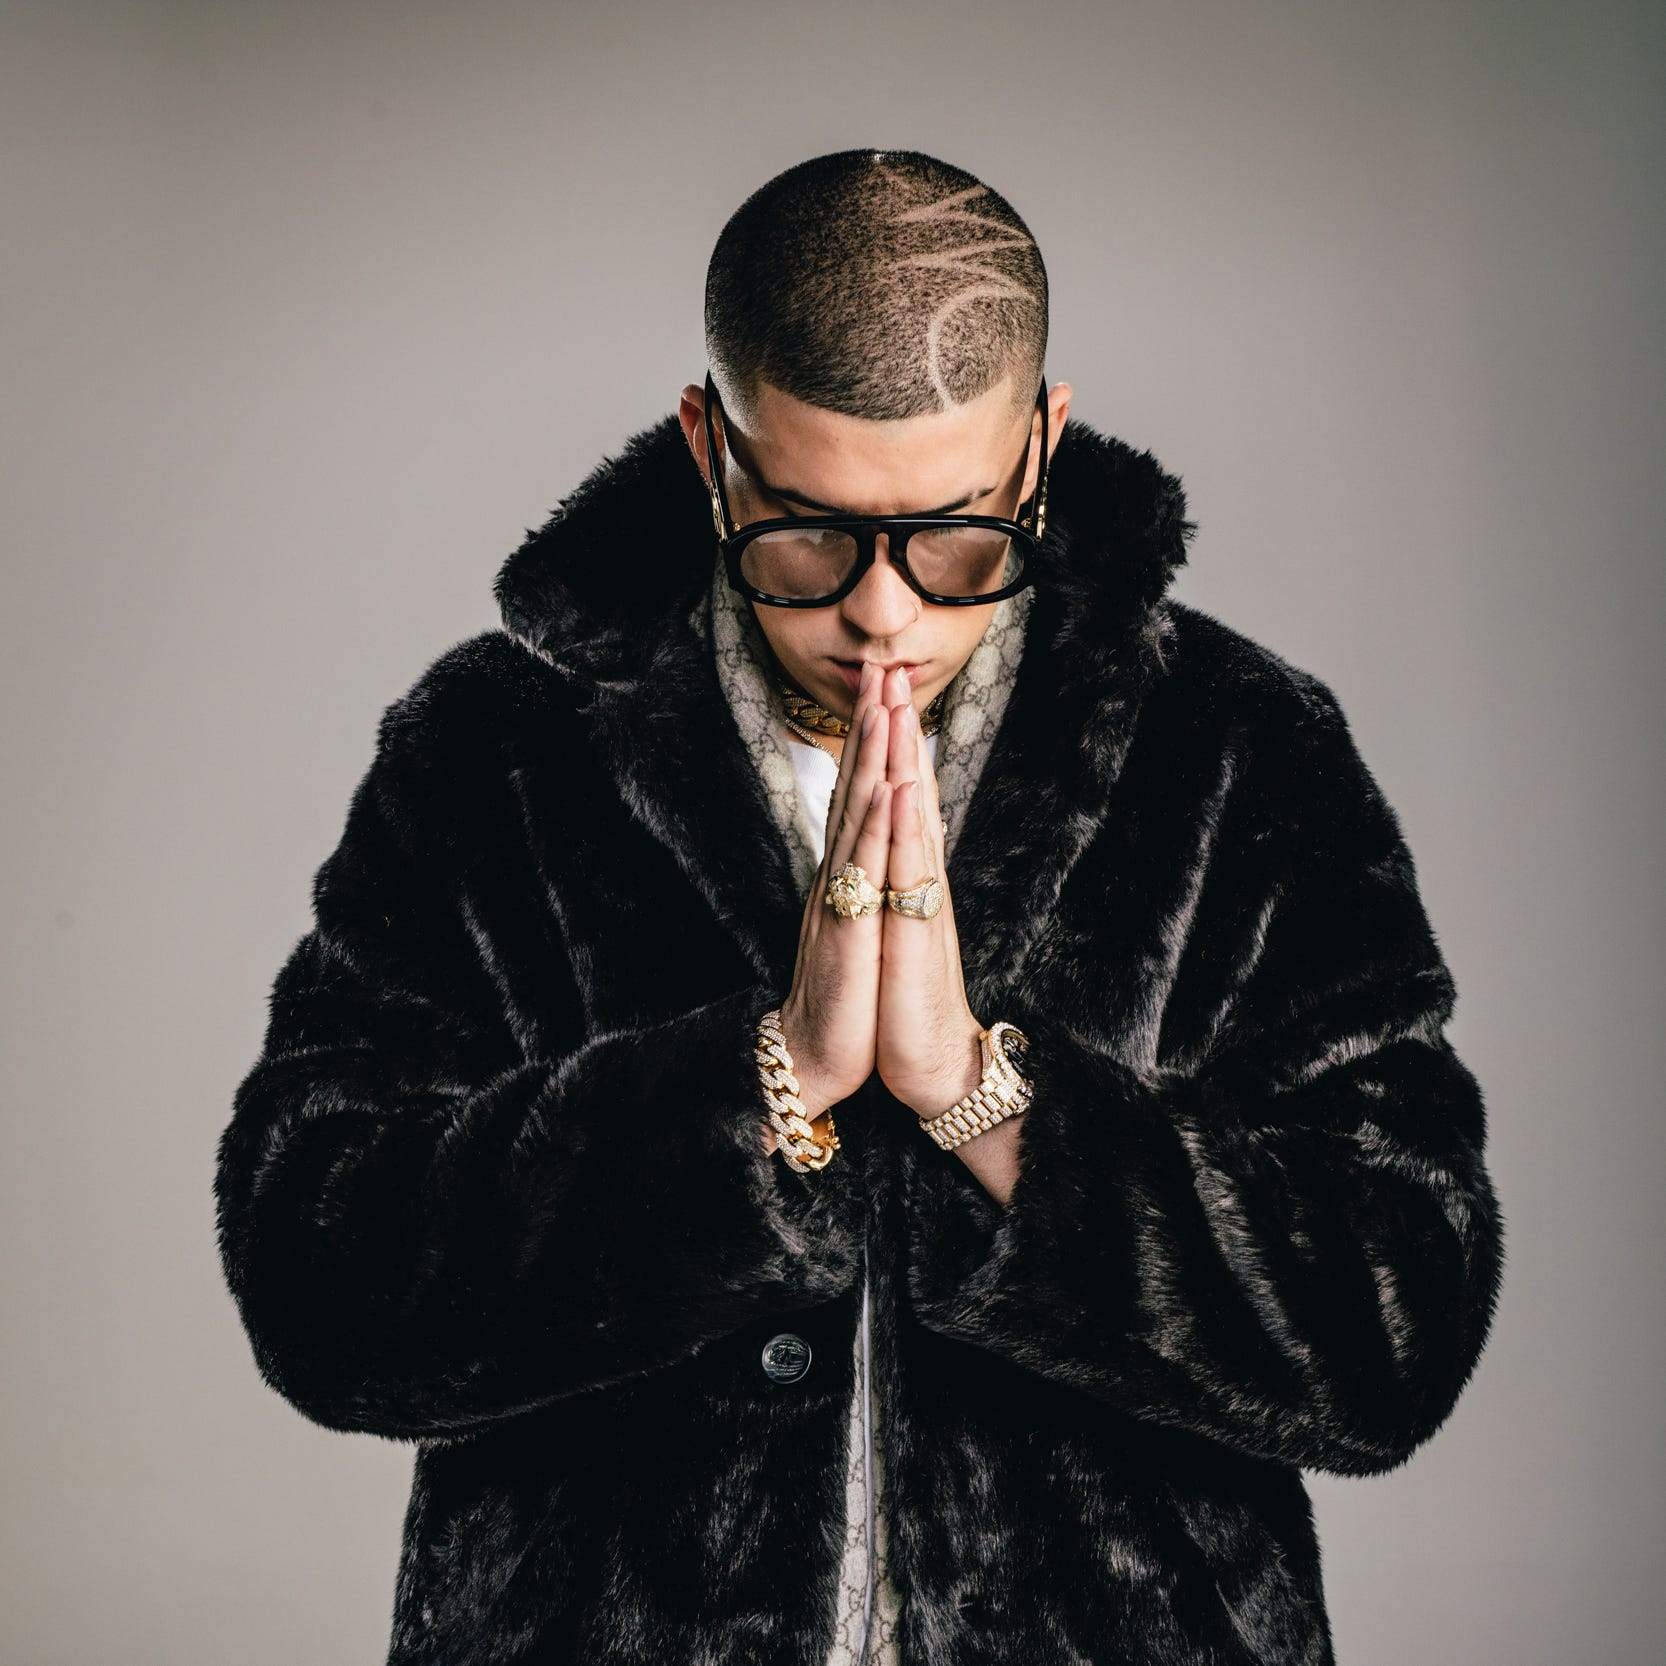 Bad Bunny to play Hertz Arena. Latin star is known for Cardi B's 'I Like It,' more hits